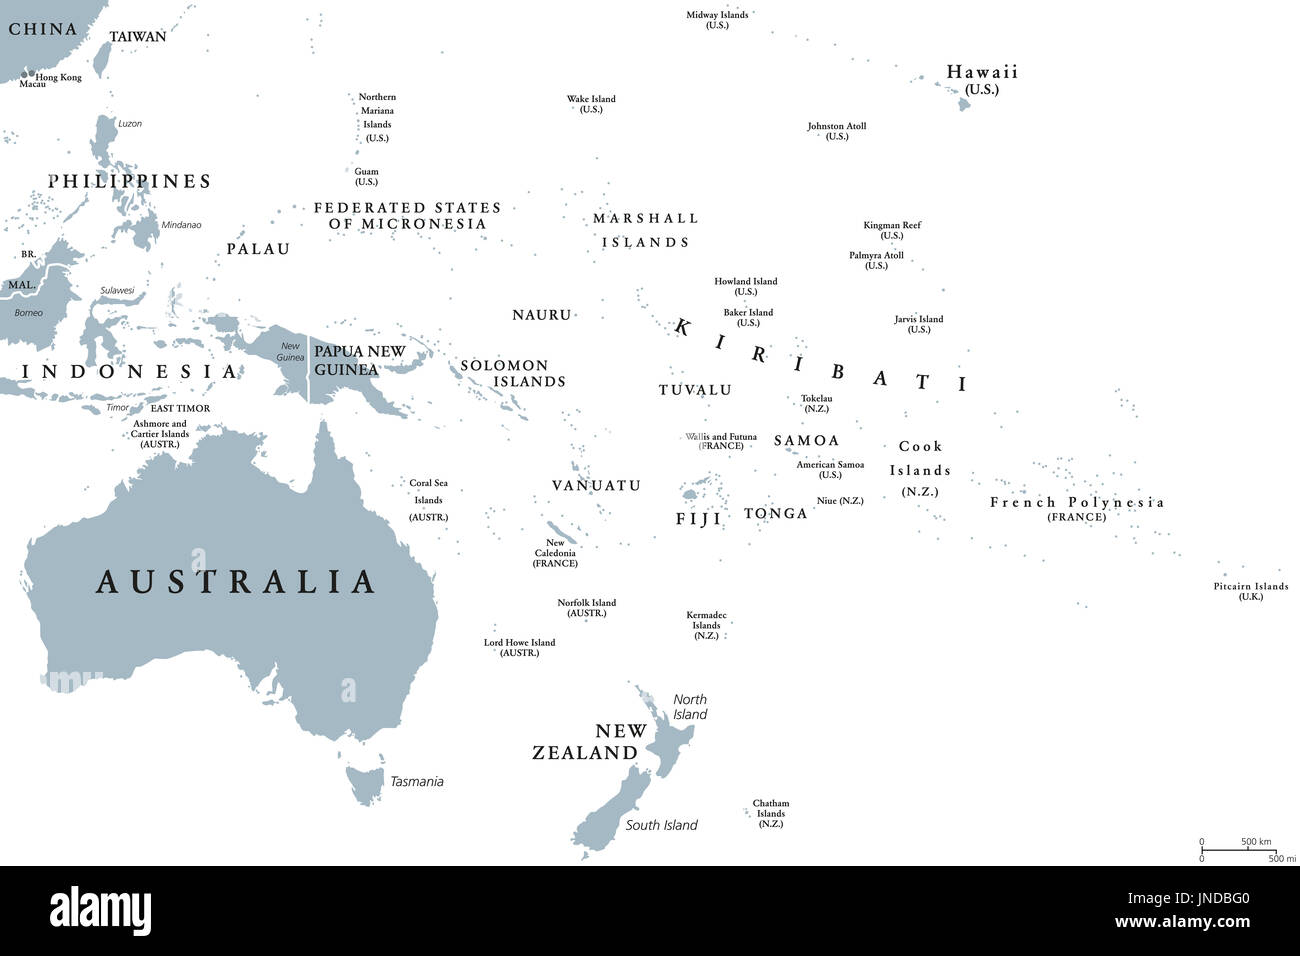 Oceania Political Map With Countries English Labeling Region Stock Photo